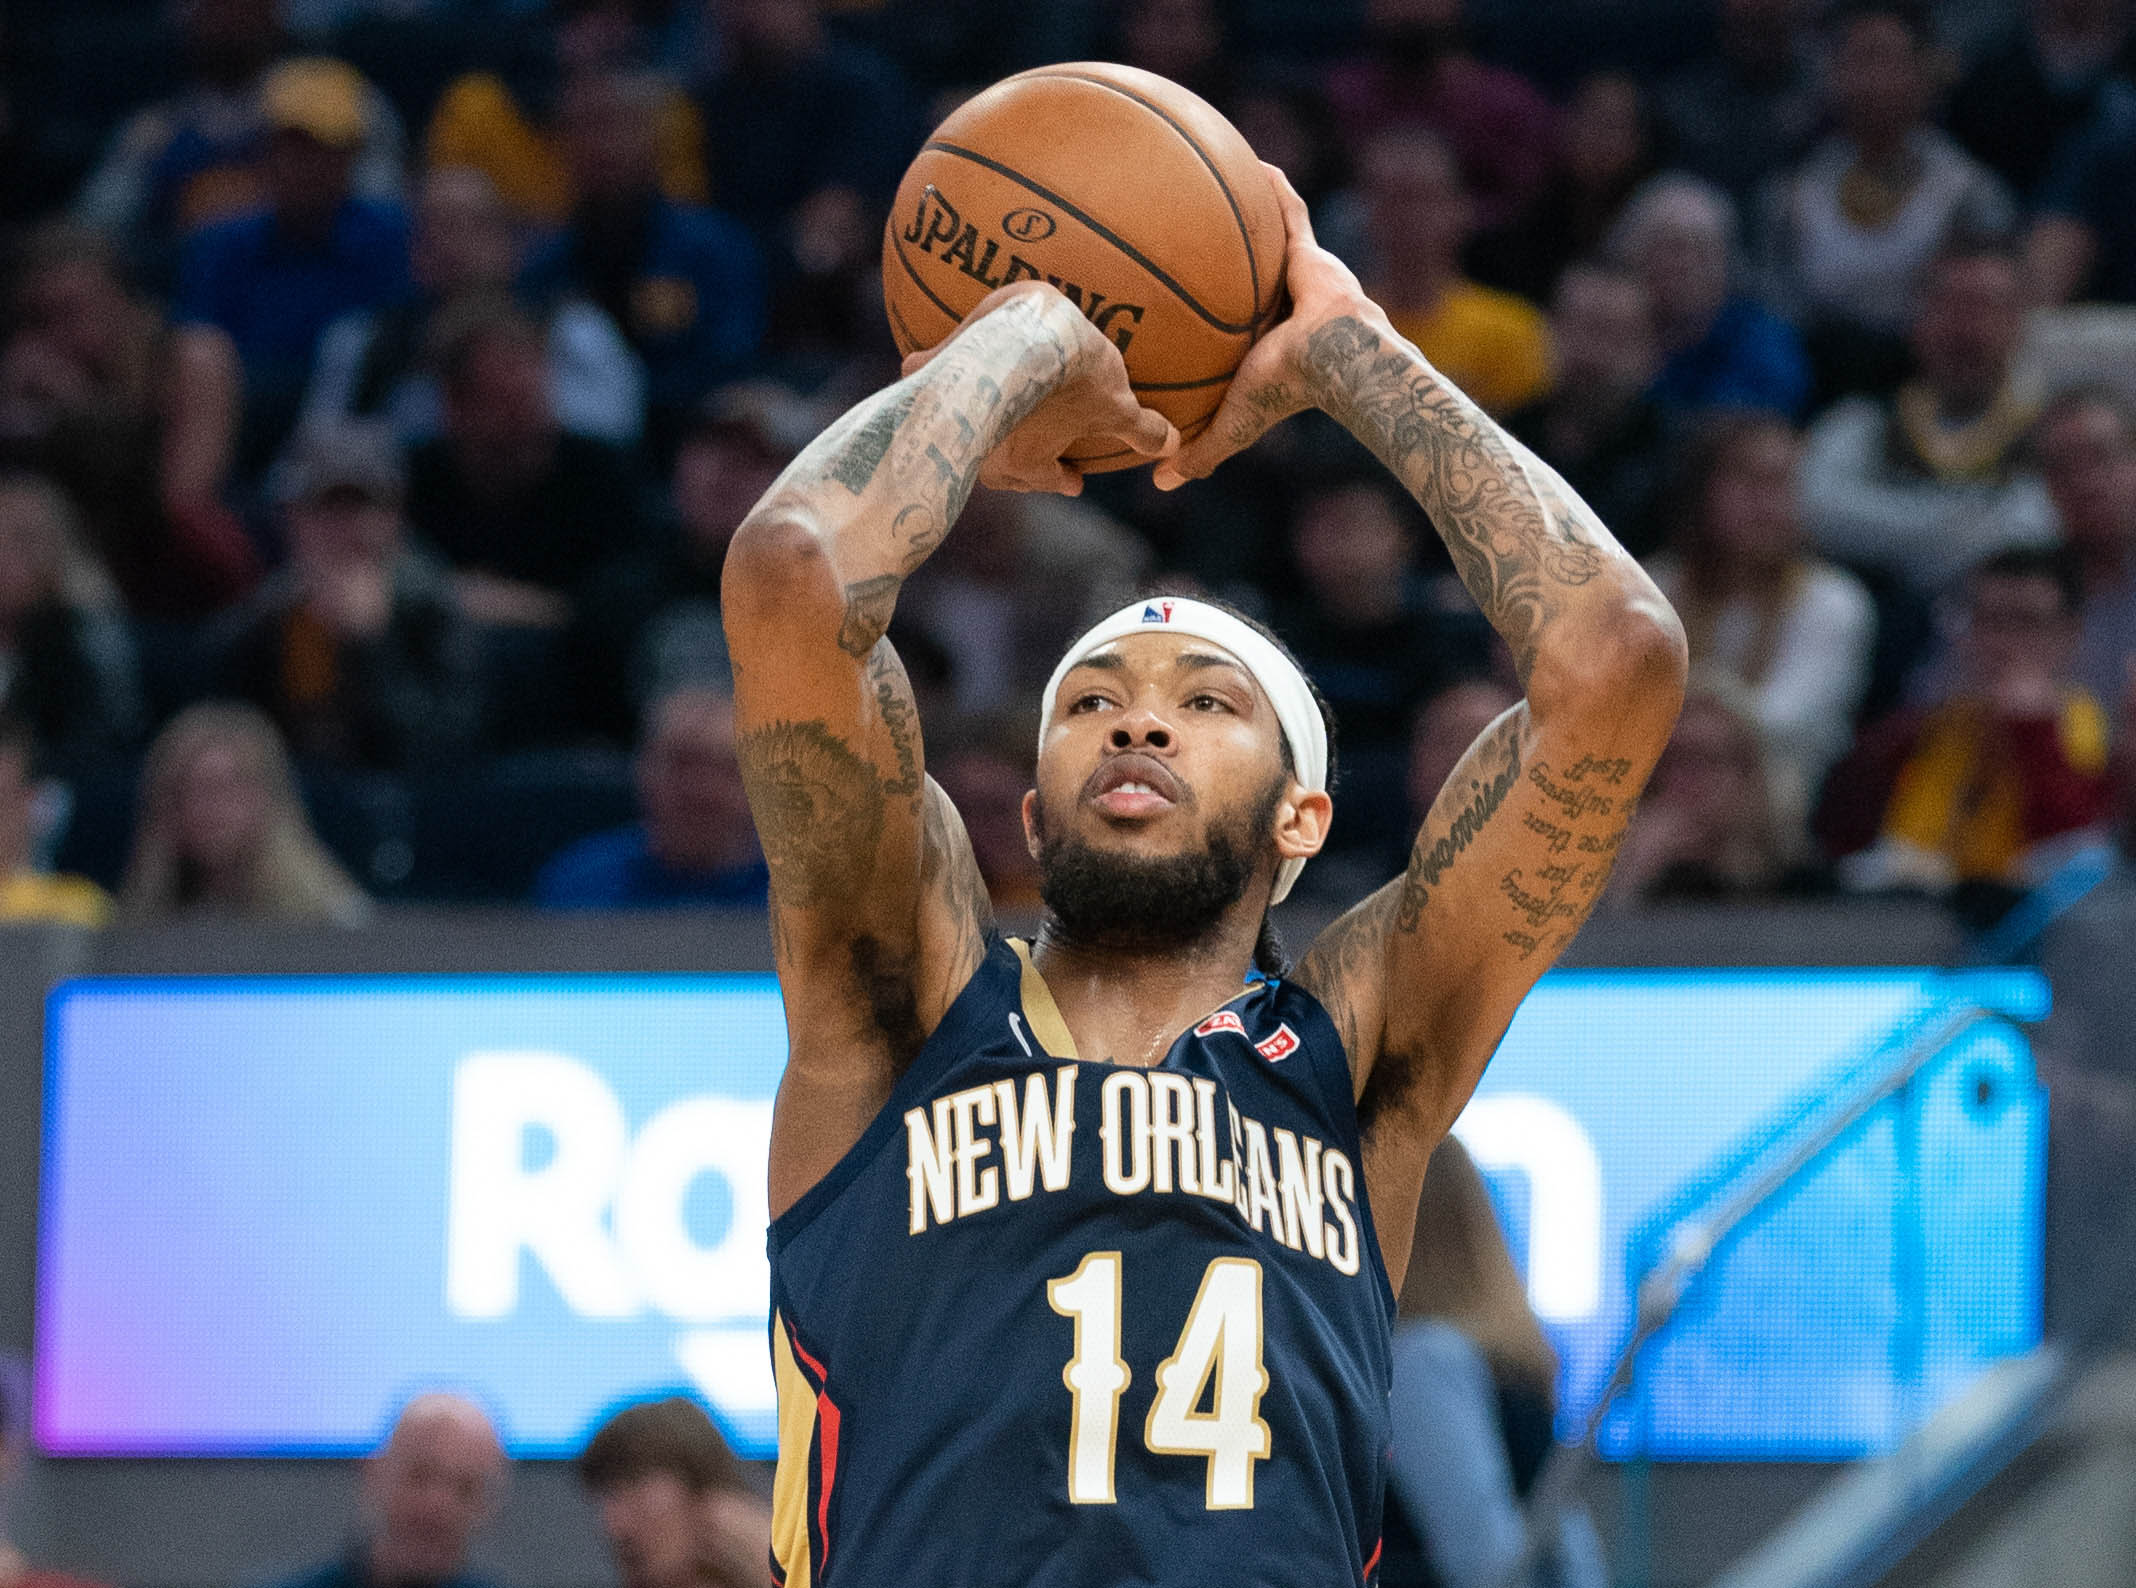 Report: Brandon Ingram agrees to 5-year extension with Pelicans